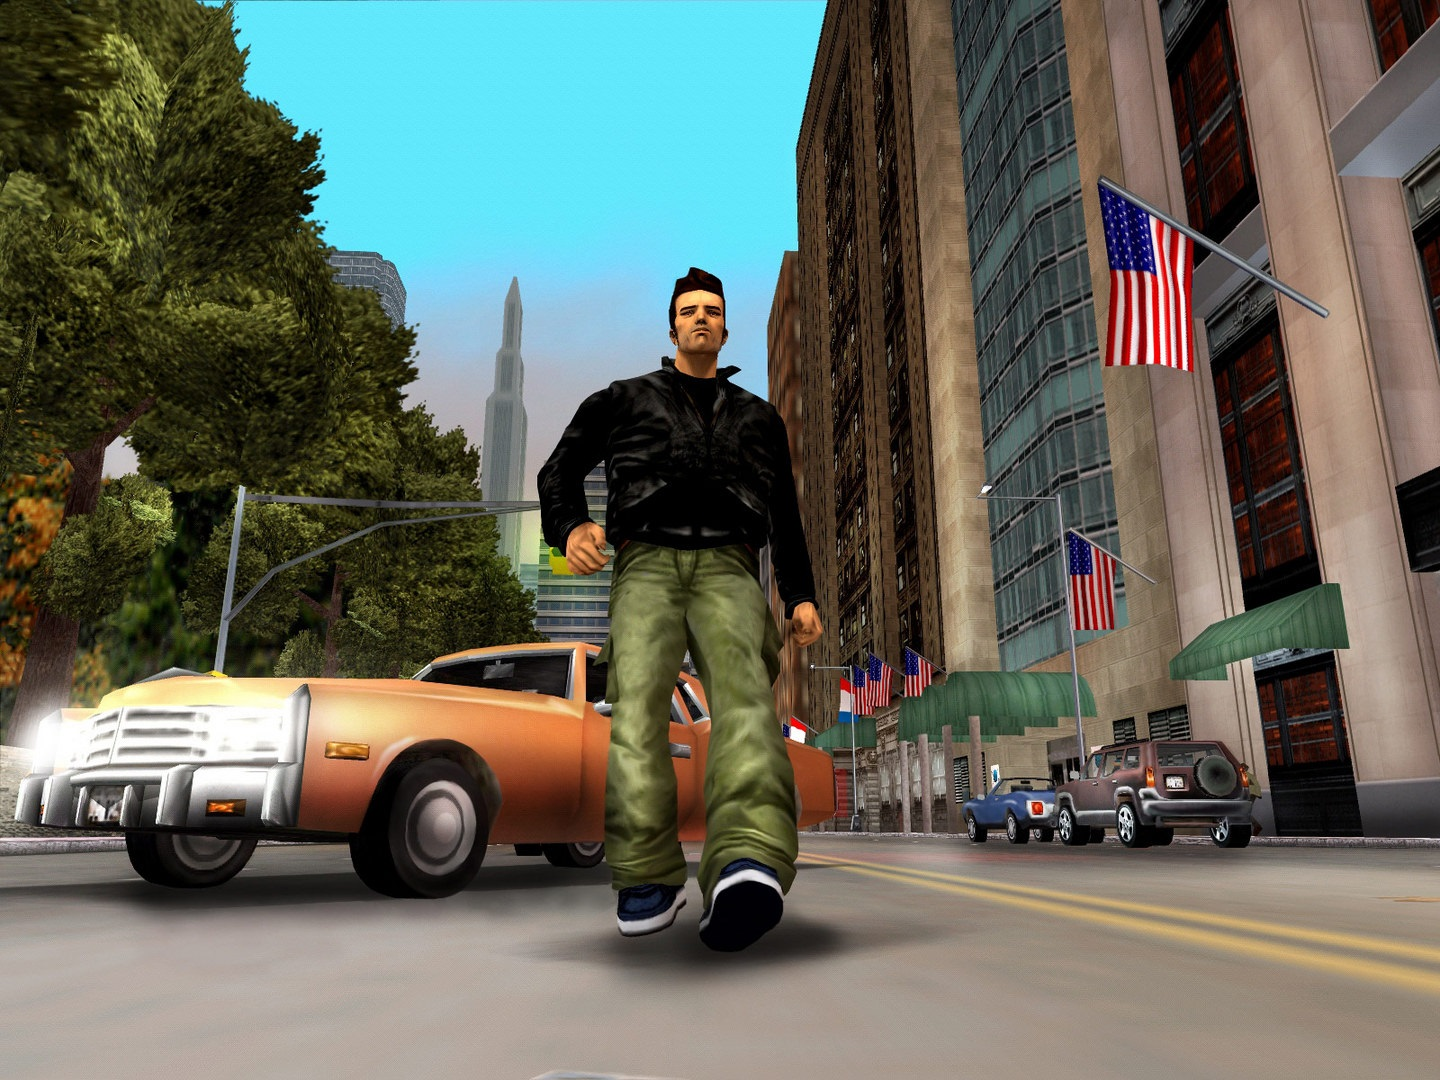 Grand Theft Auto III | The 8 Most Influential Video Games of All Time | Gammicks